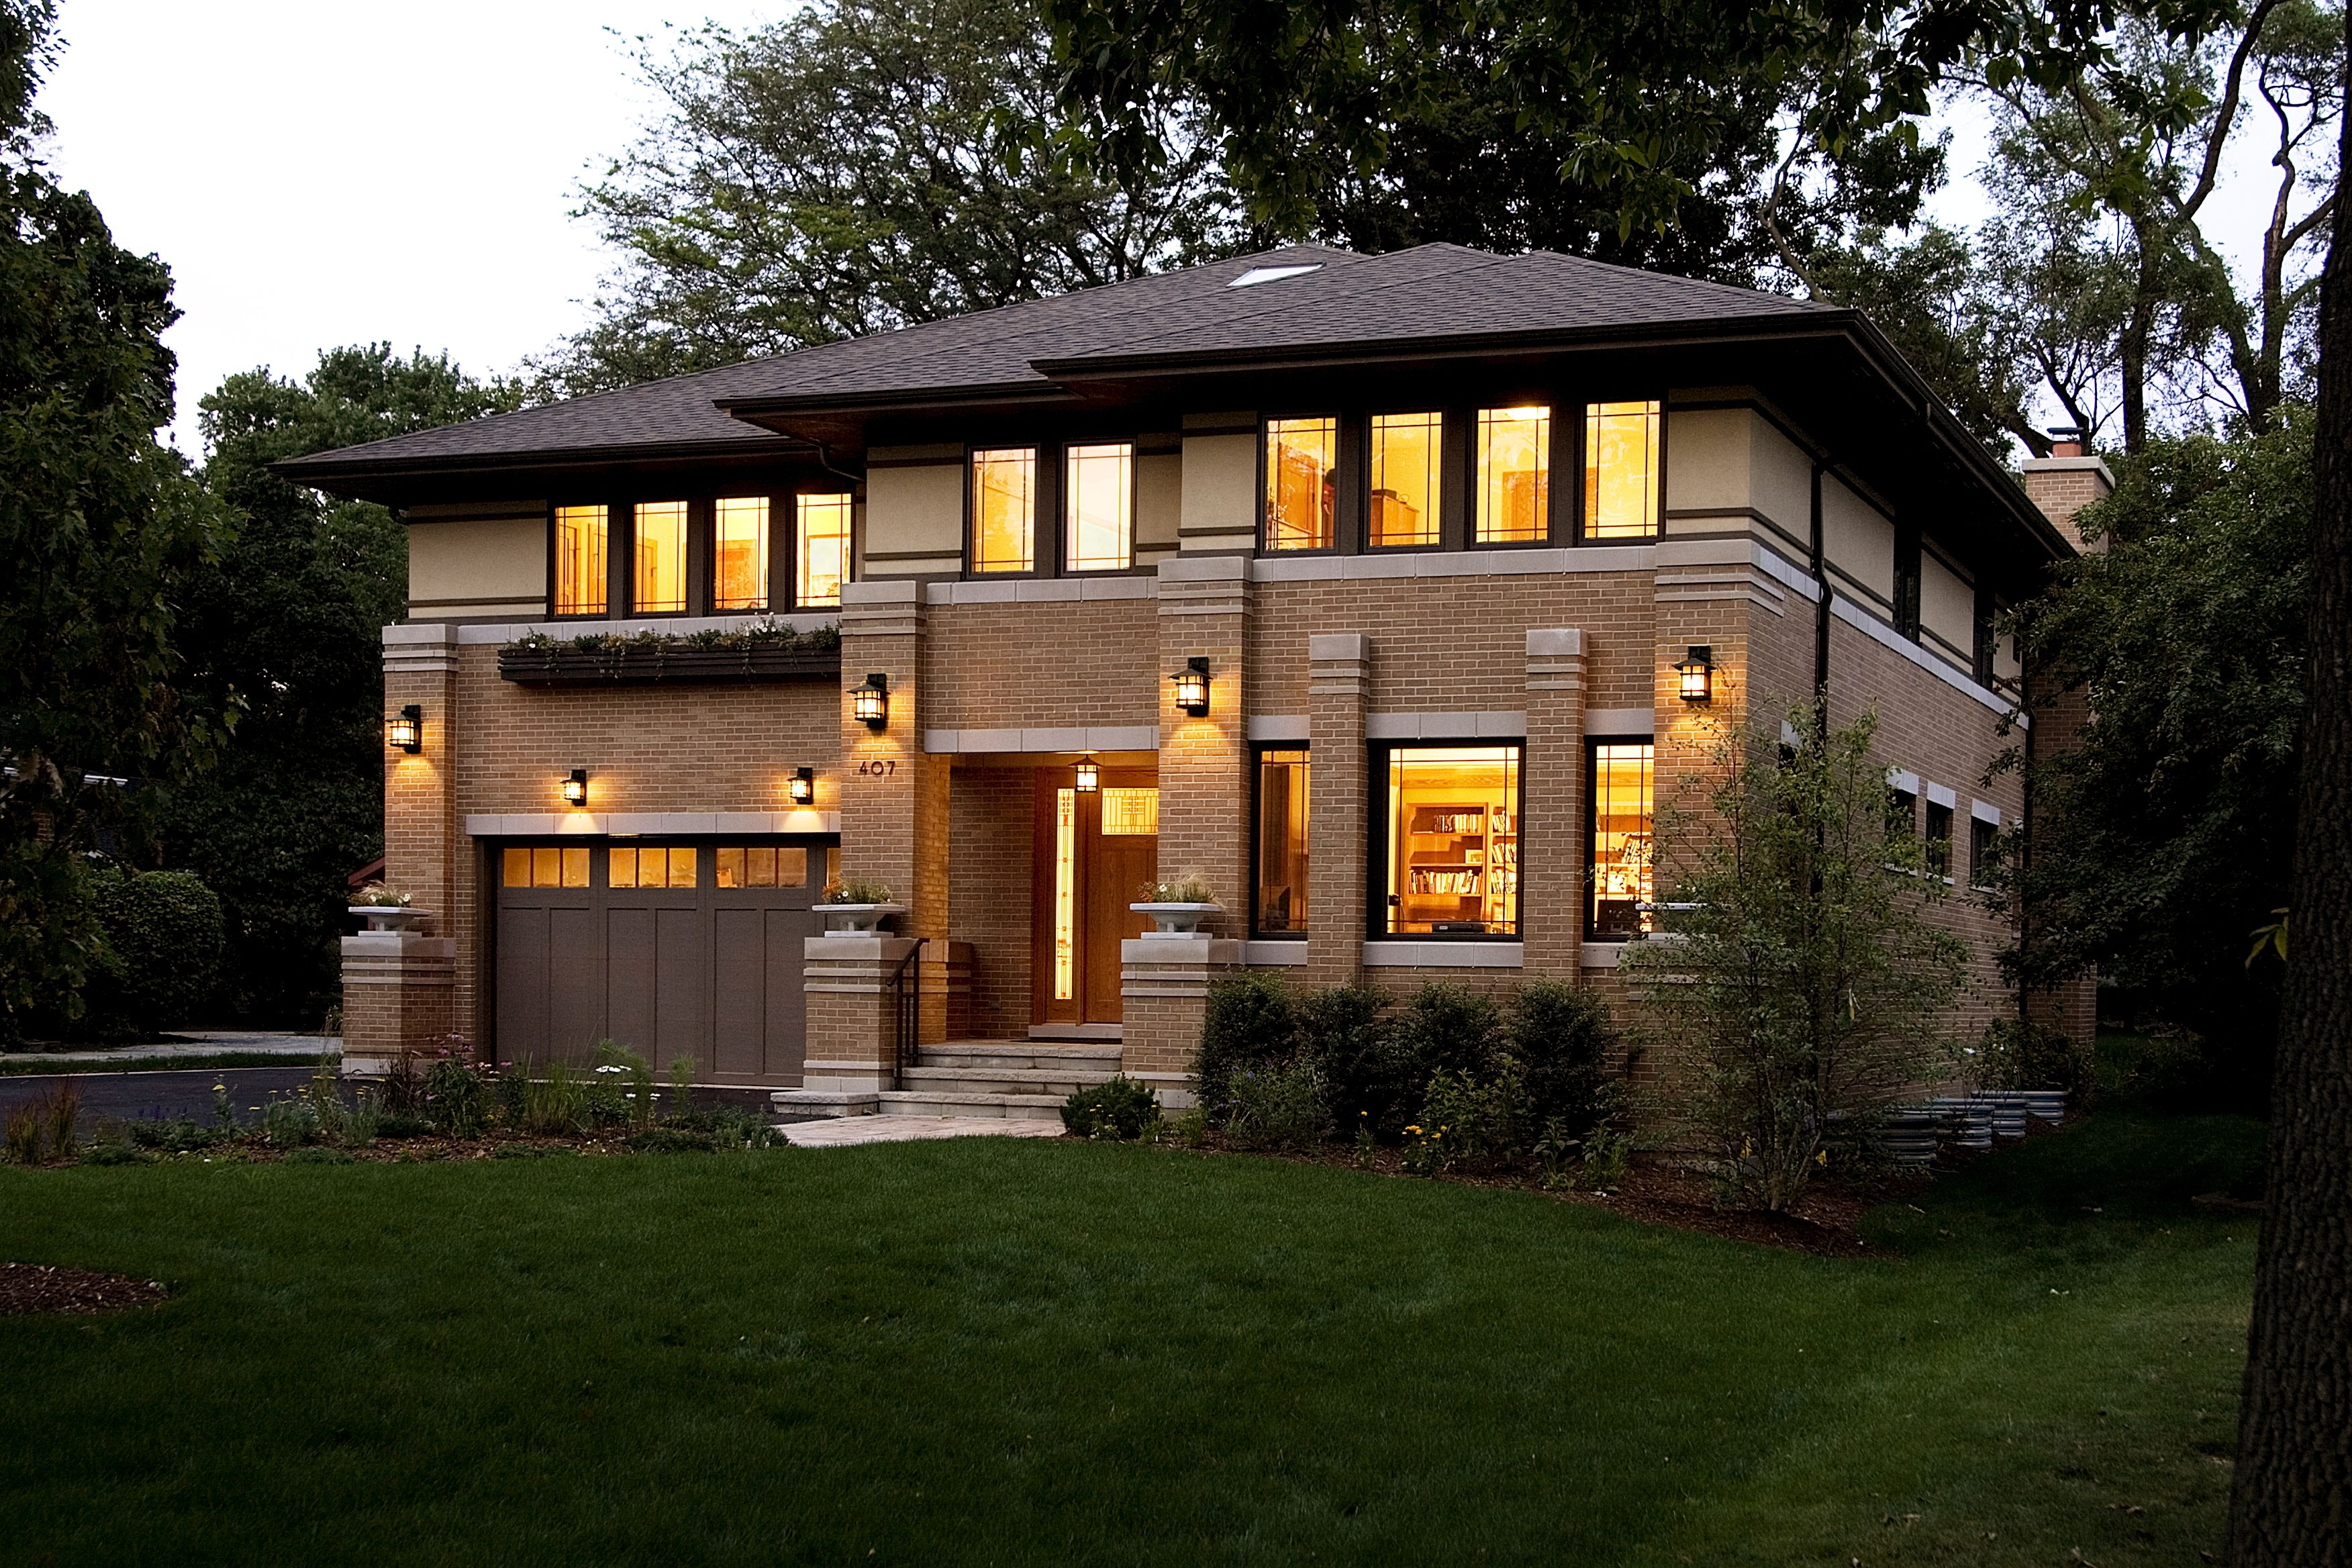 New prairie style house west studio frank lloyd wright for Contemporary prairie style homes